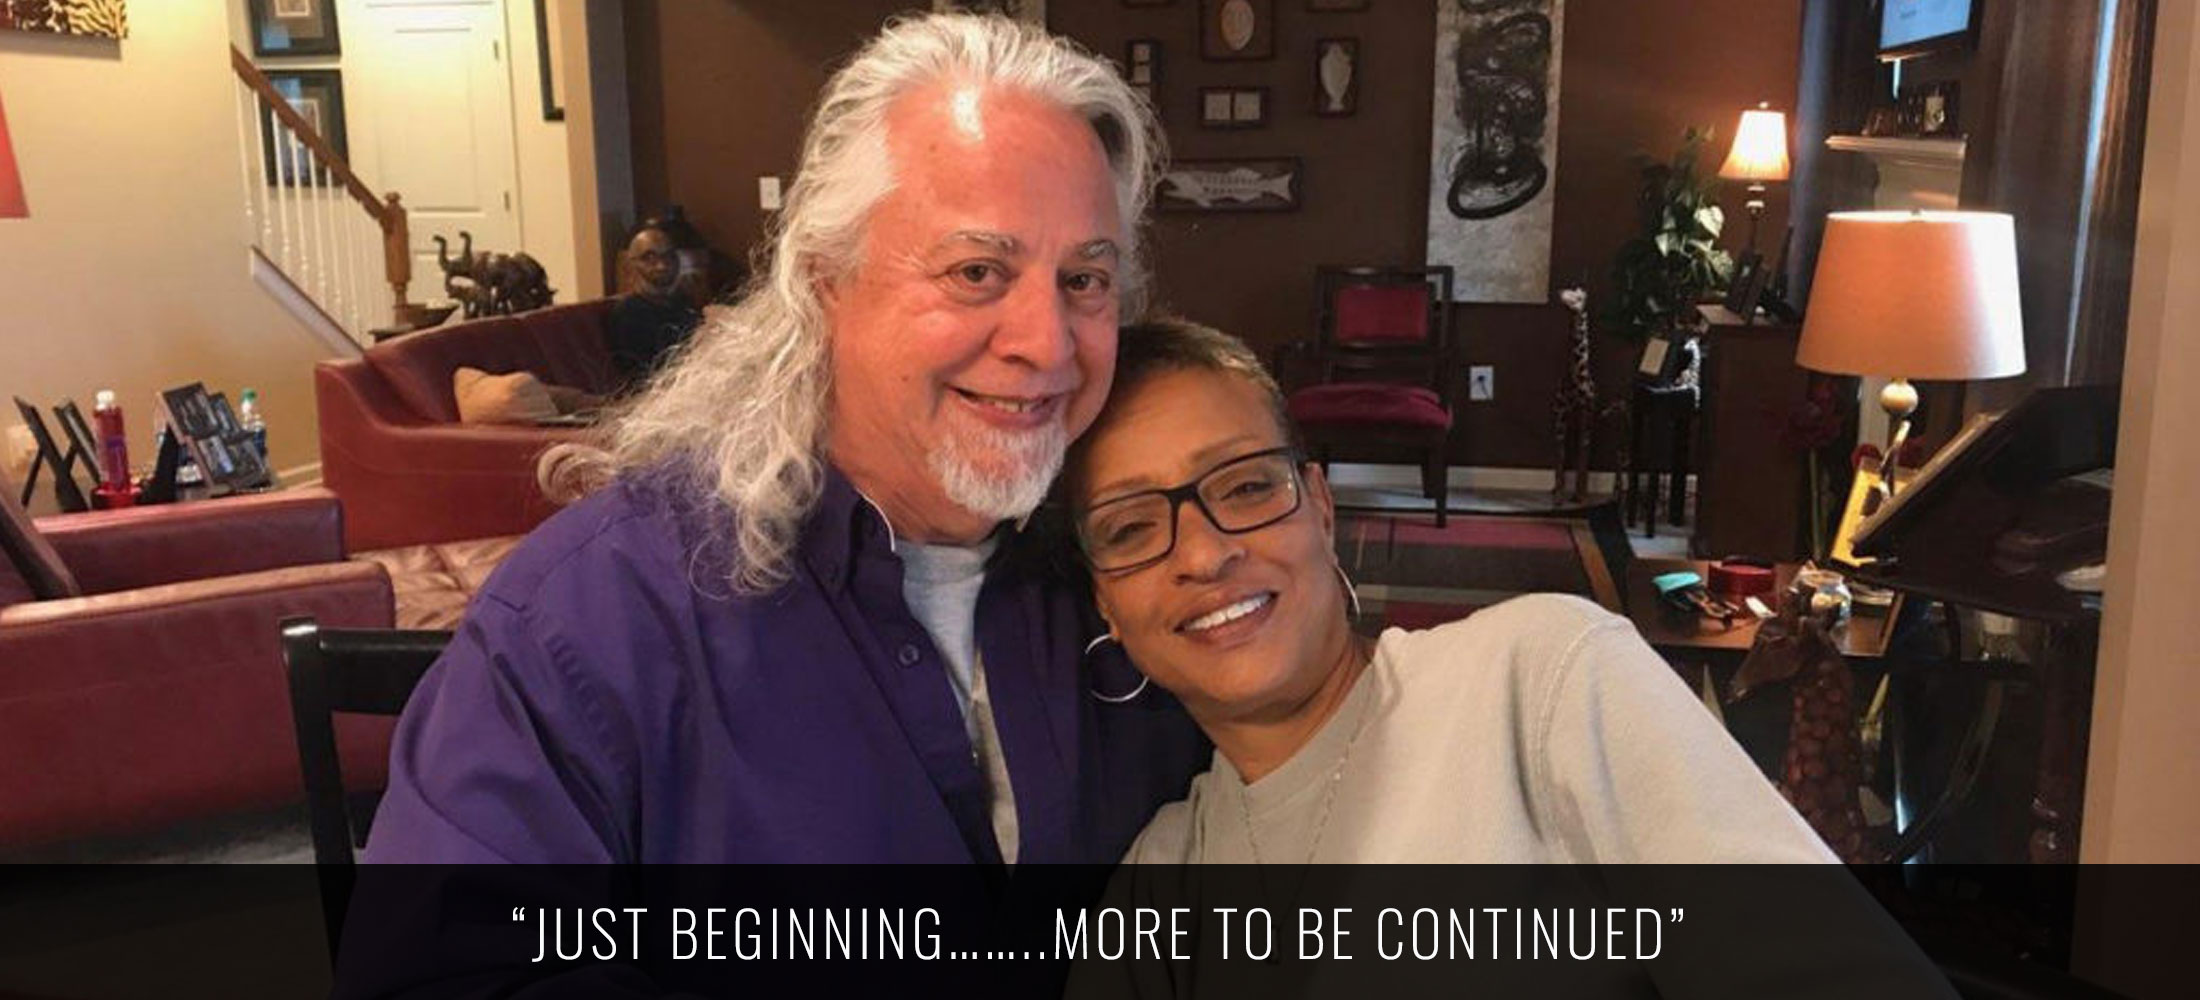 just beginning…more to be continued quote